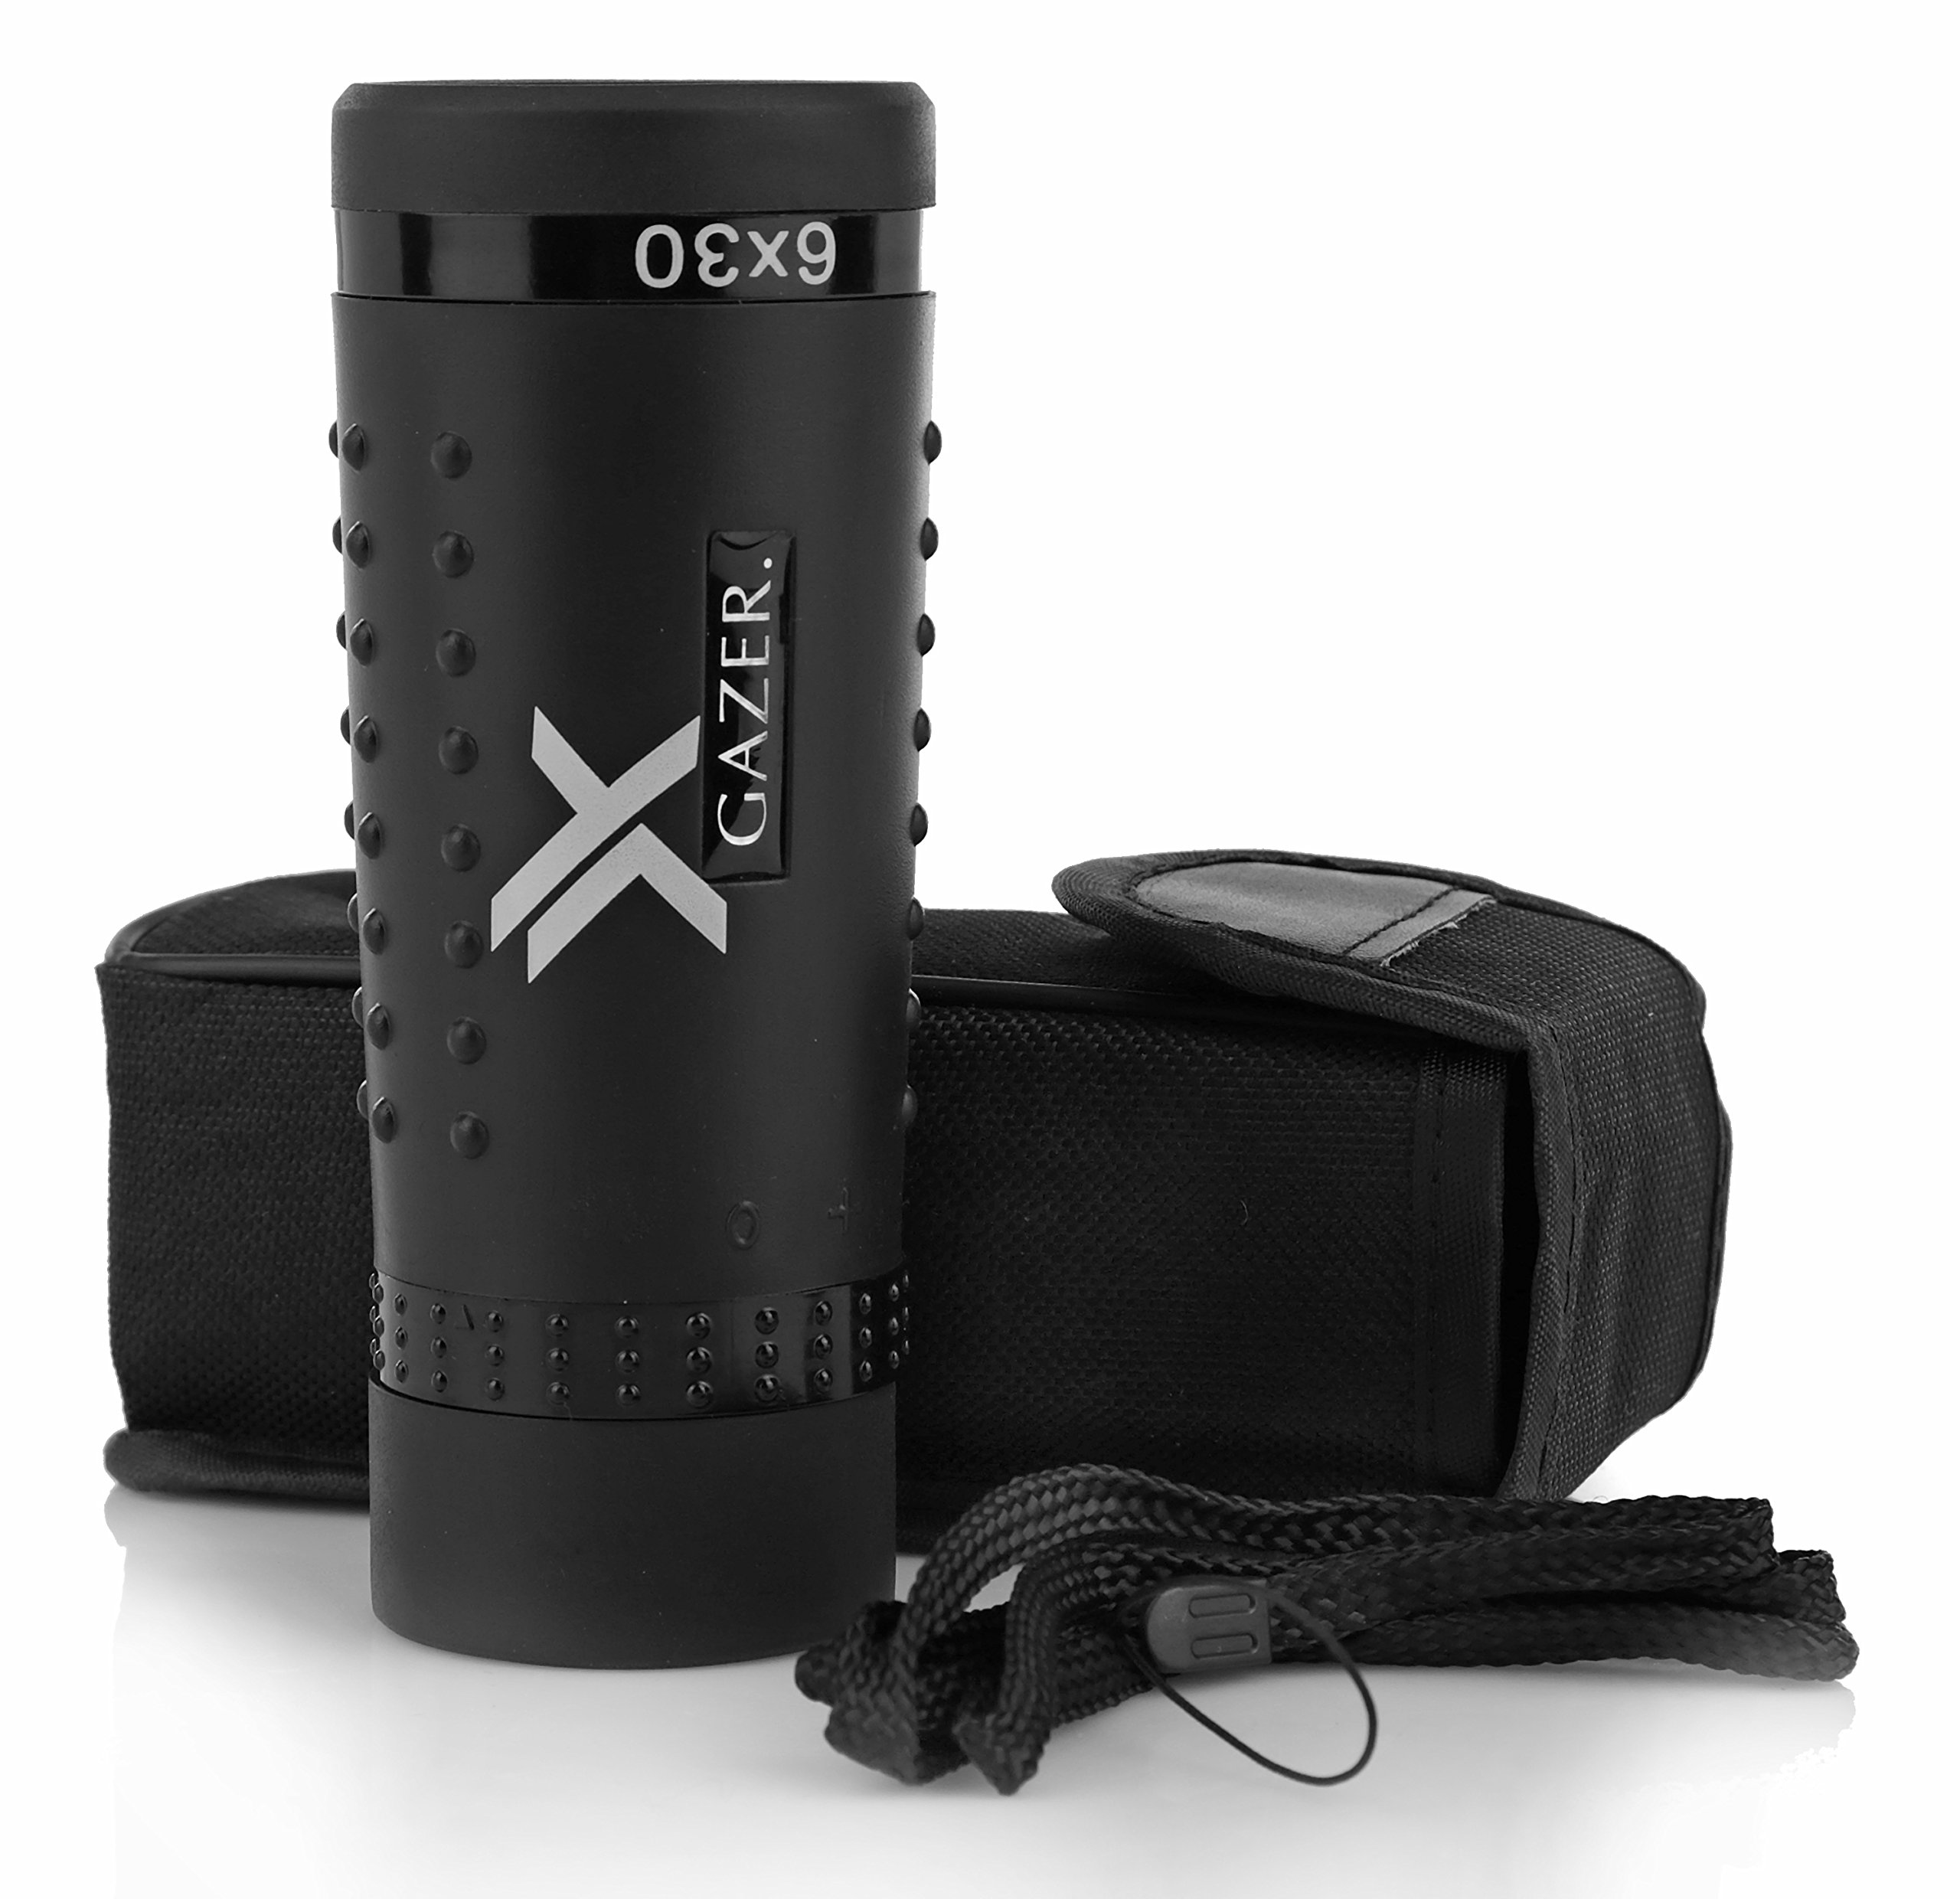 Xgazer Optics YV Bird Watching Clear Wide View Monocular Grip Scope, Great for Birding, Hiking, Hunting and Surveillance, FMC, Compact Handheld Telescope, Cloth, Neck Strap & Case are Included by Xgazer Optics